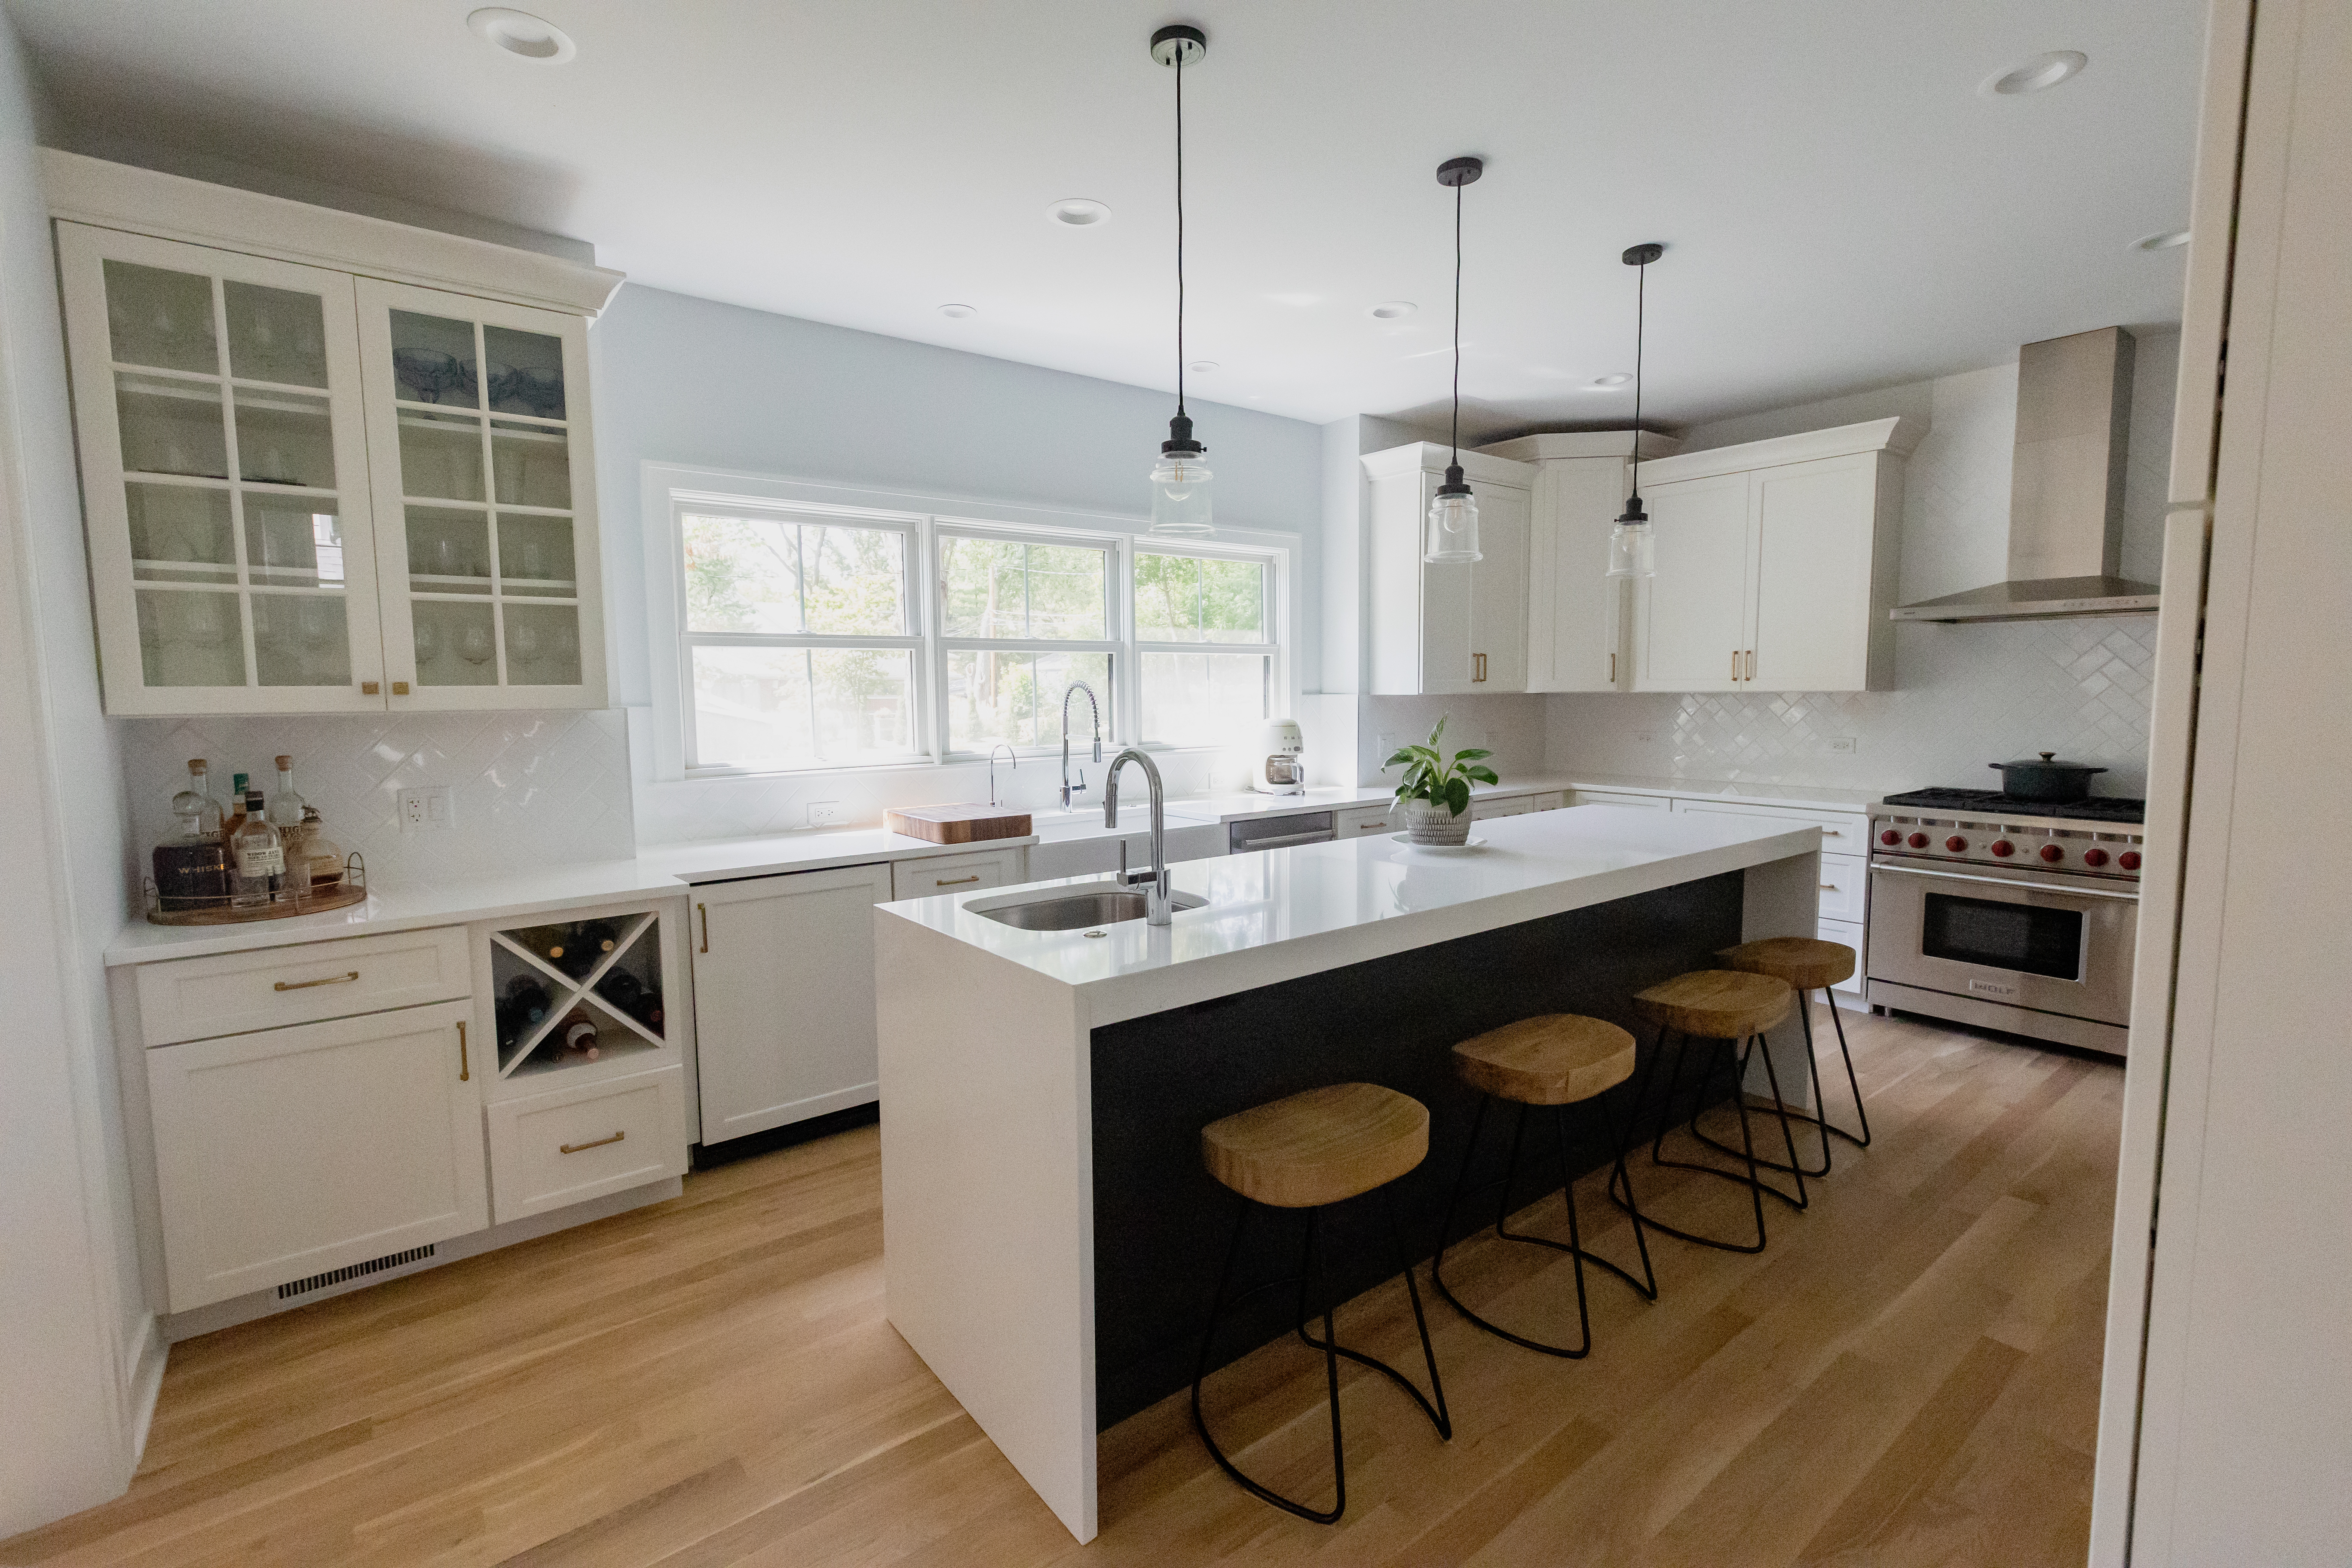 While kitchen with picture window over the sink and a eat-at center island featuring white cabinets and countertops with a dark gray contrasting island.